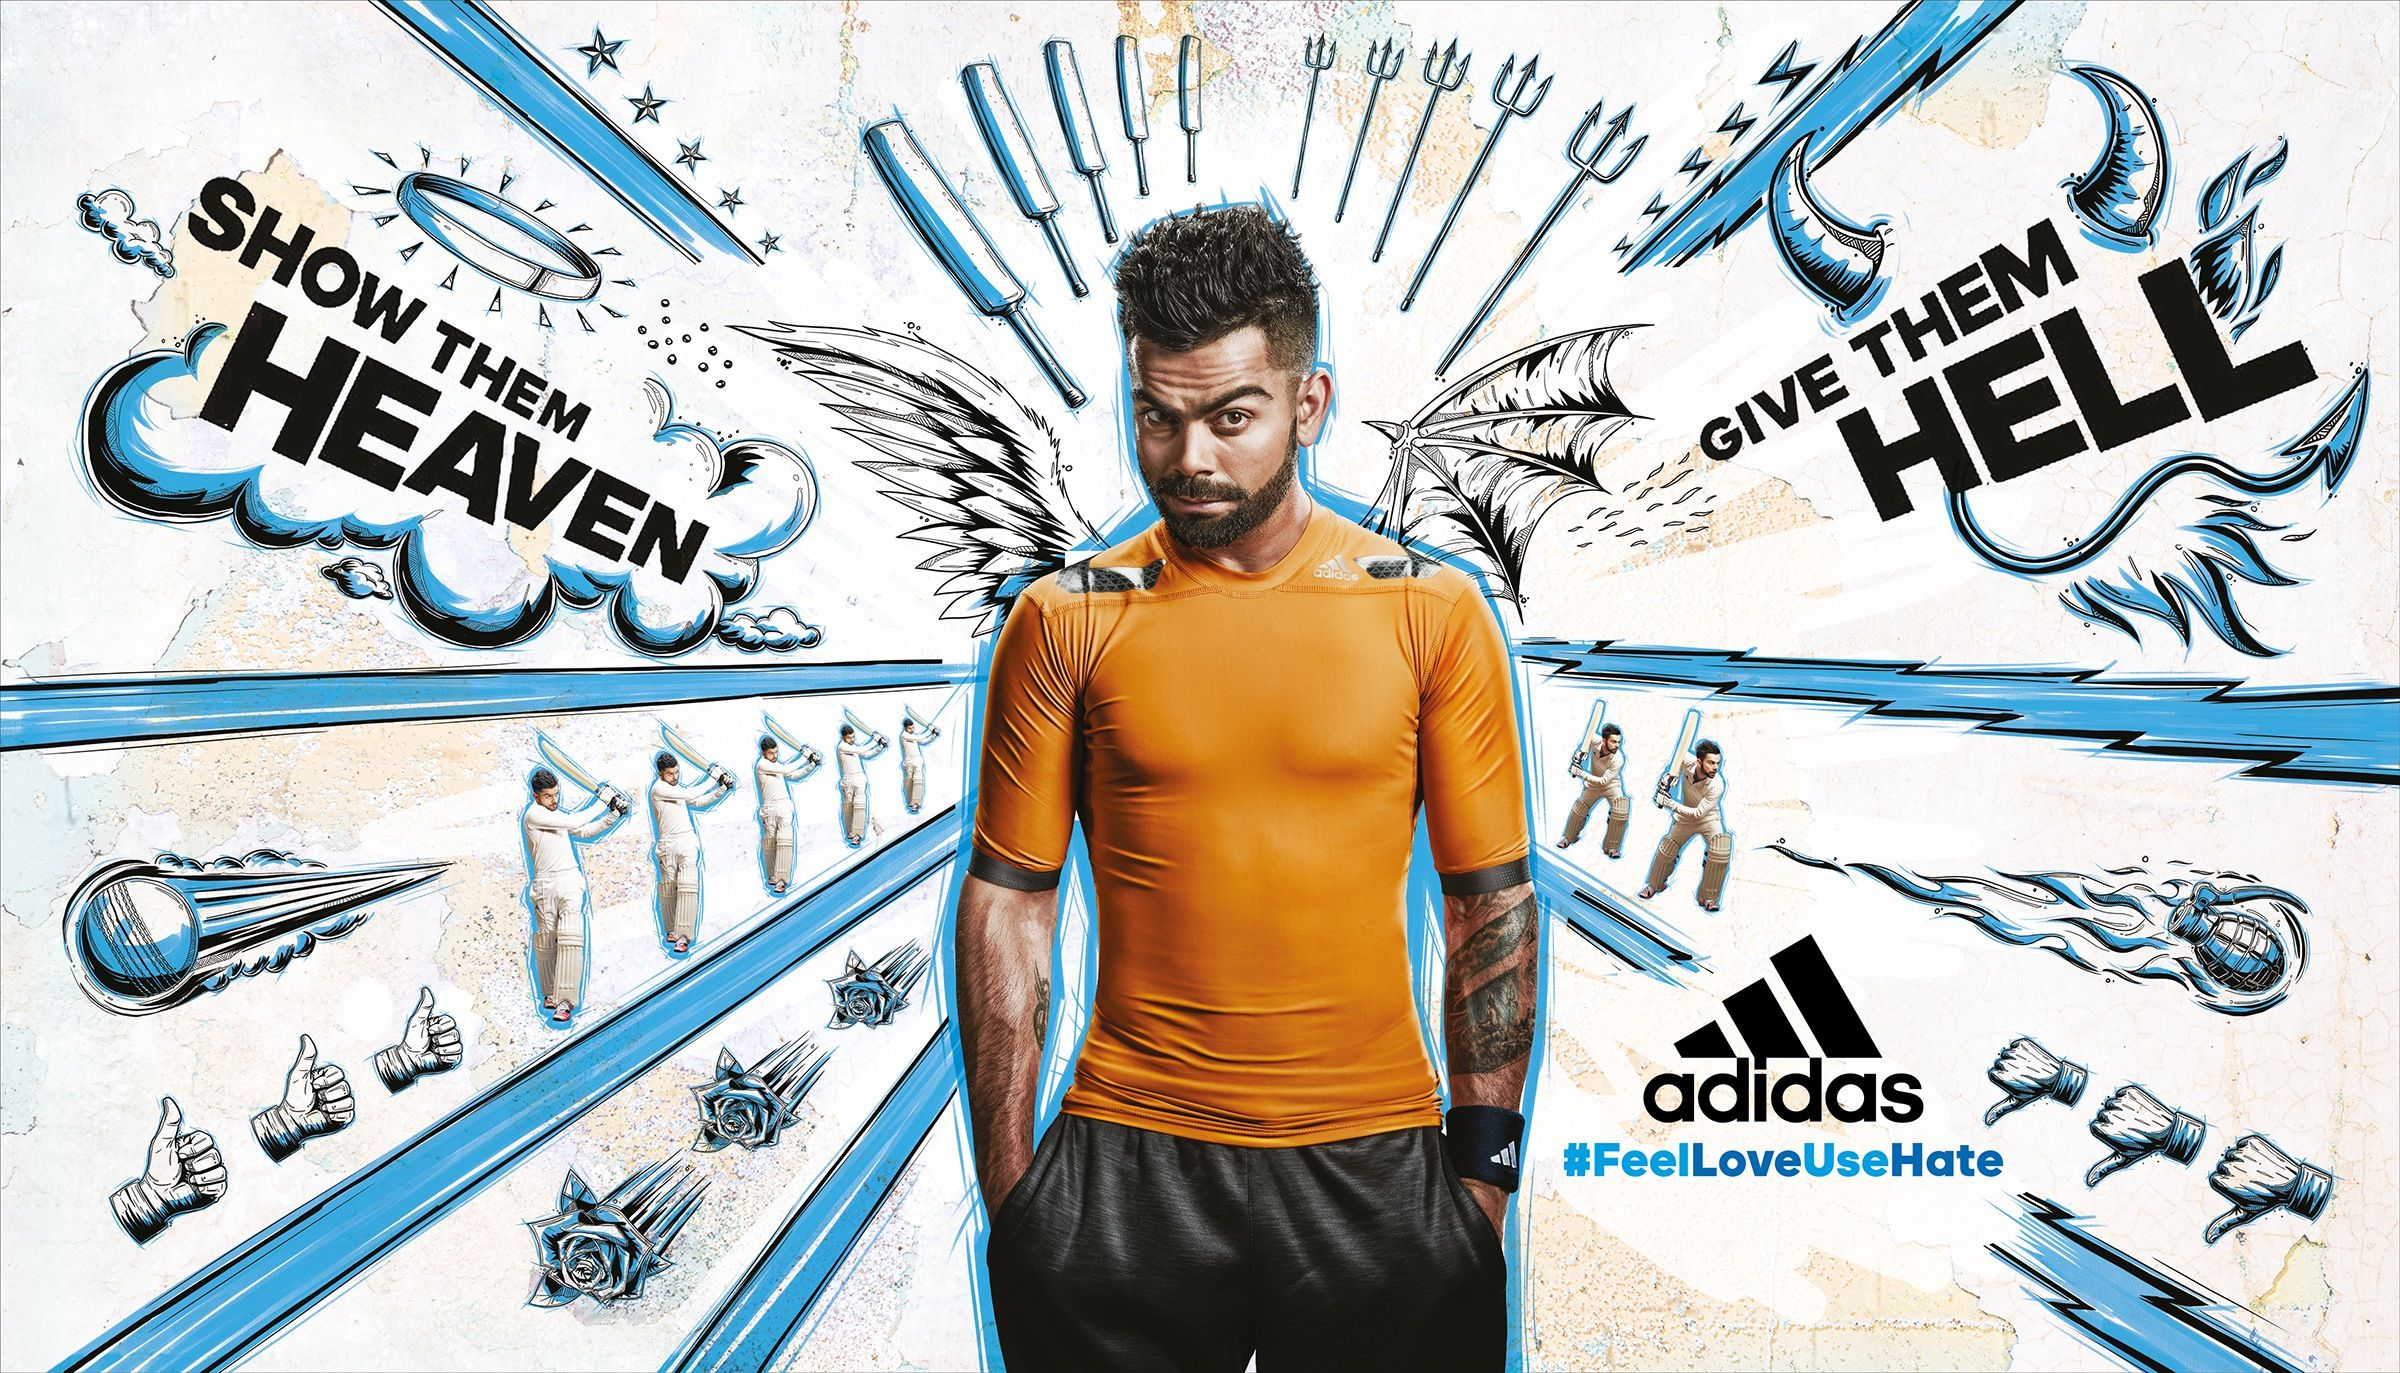 Adidas Blue In 2020 Adidas Ad Adidas Advertising Advertising Campaign